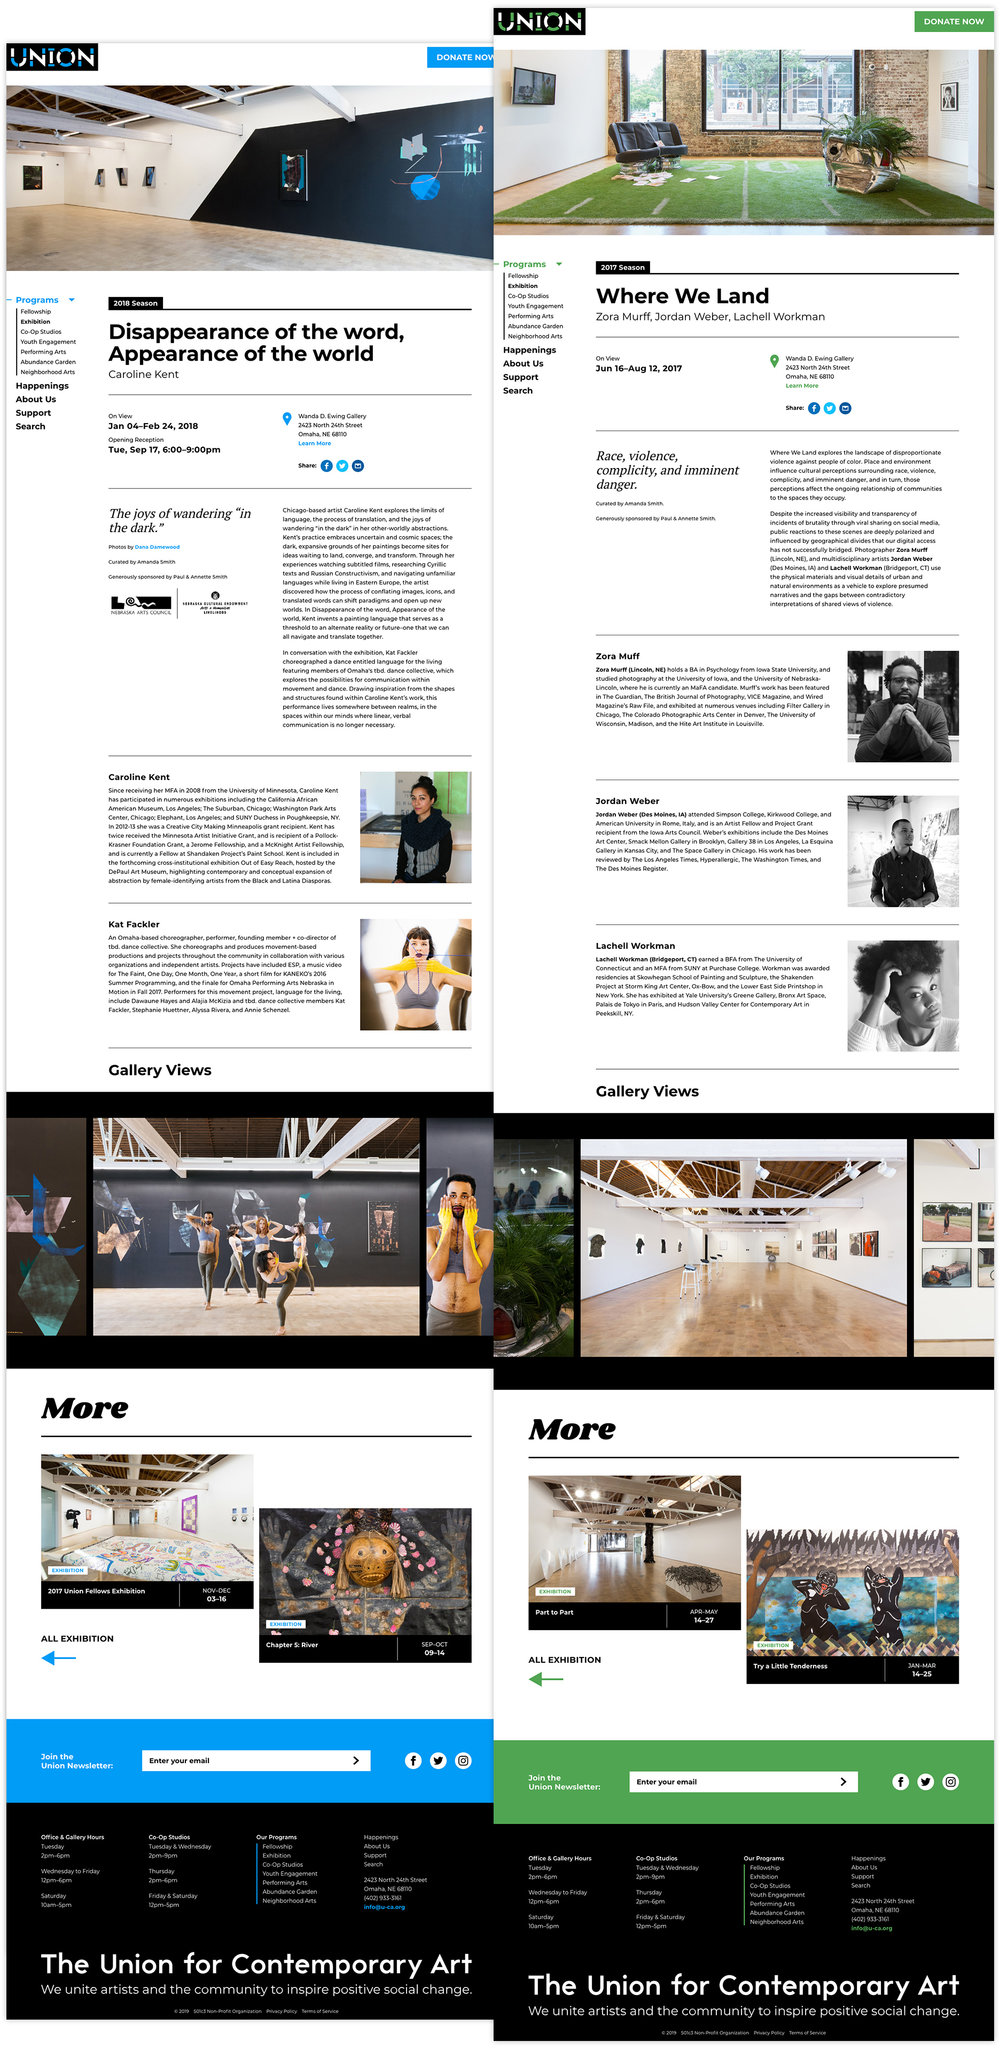 jkdc_union-web-pagedesigns-exhibitions.jpg